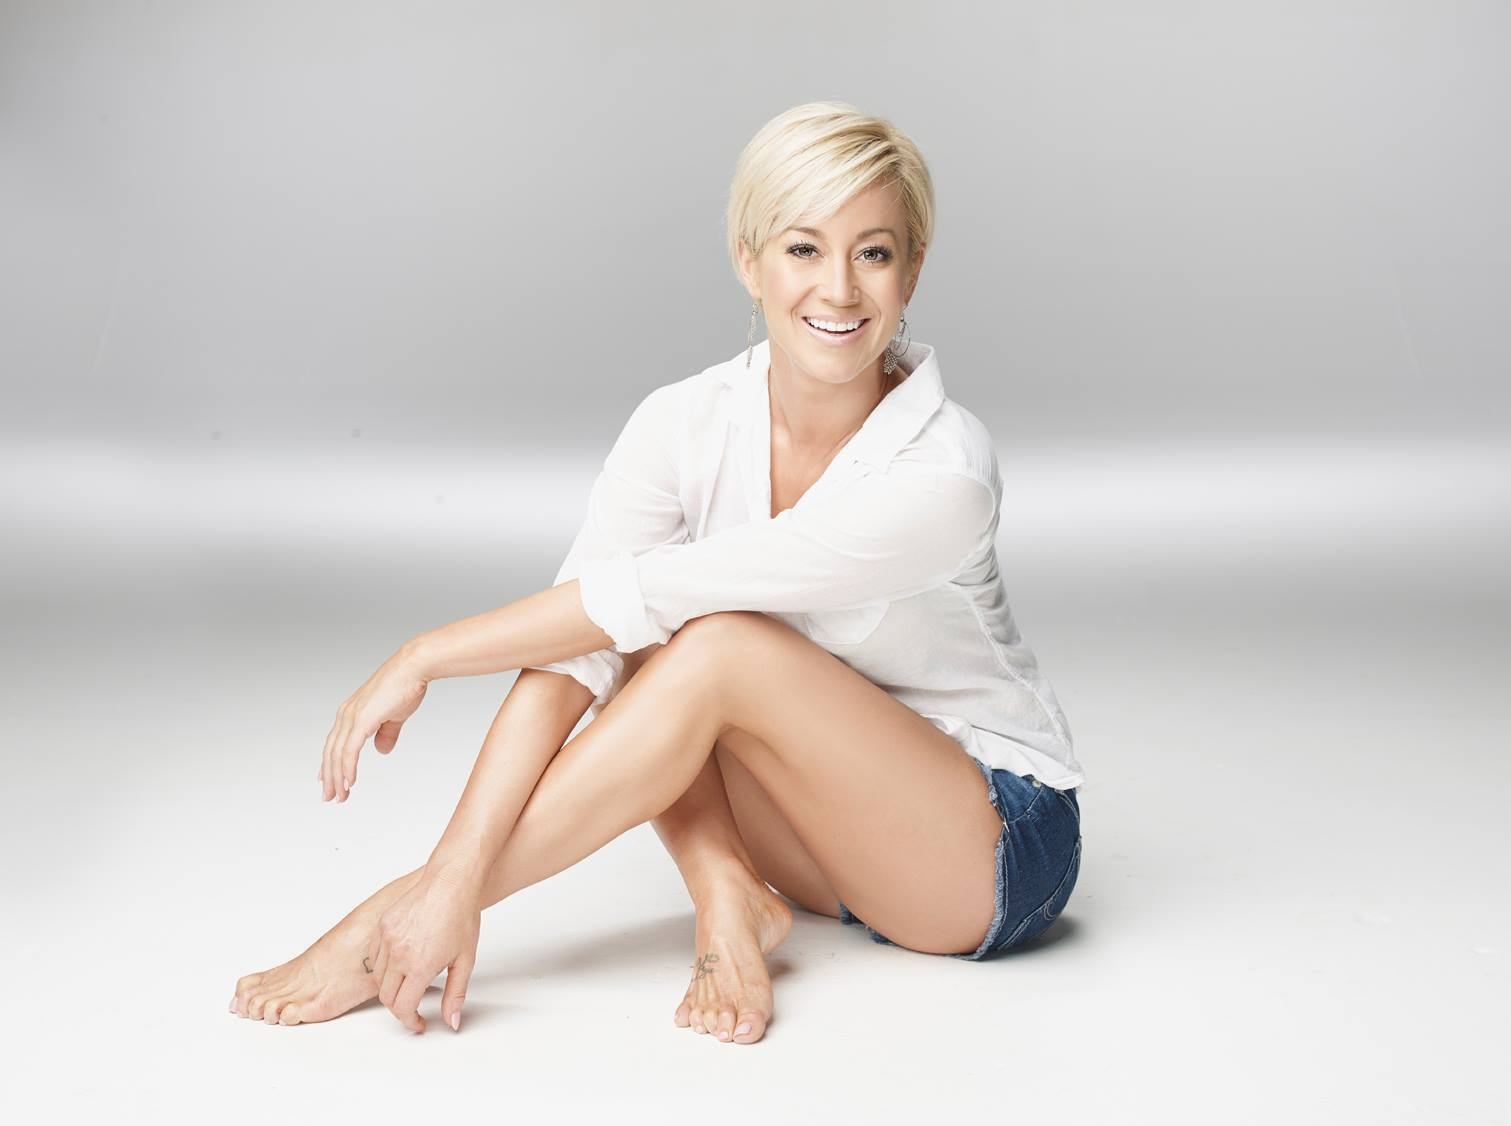 BALLANTYNE MAGAZINE – Kellie Pickler headlines Girls & Guitars for this date night